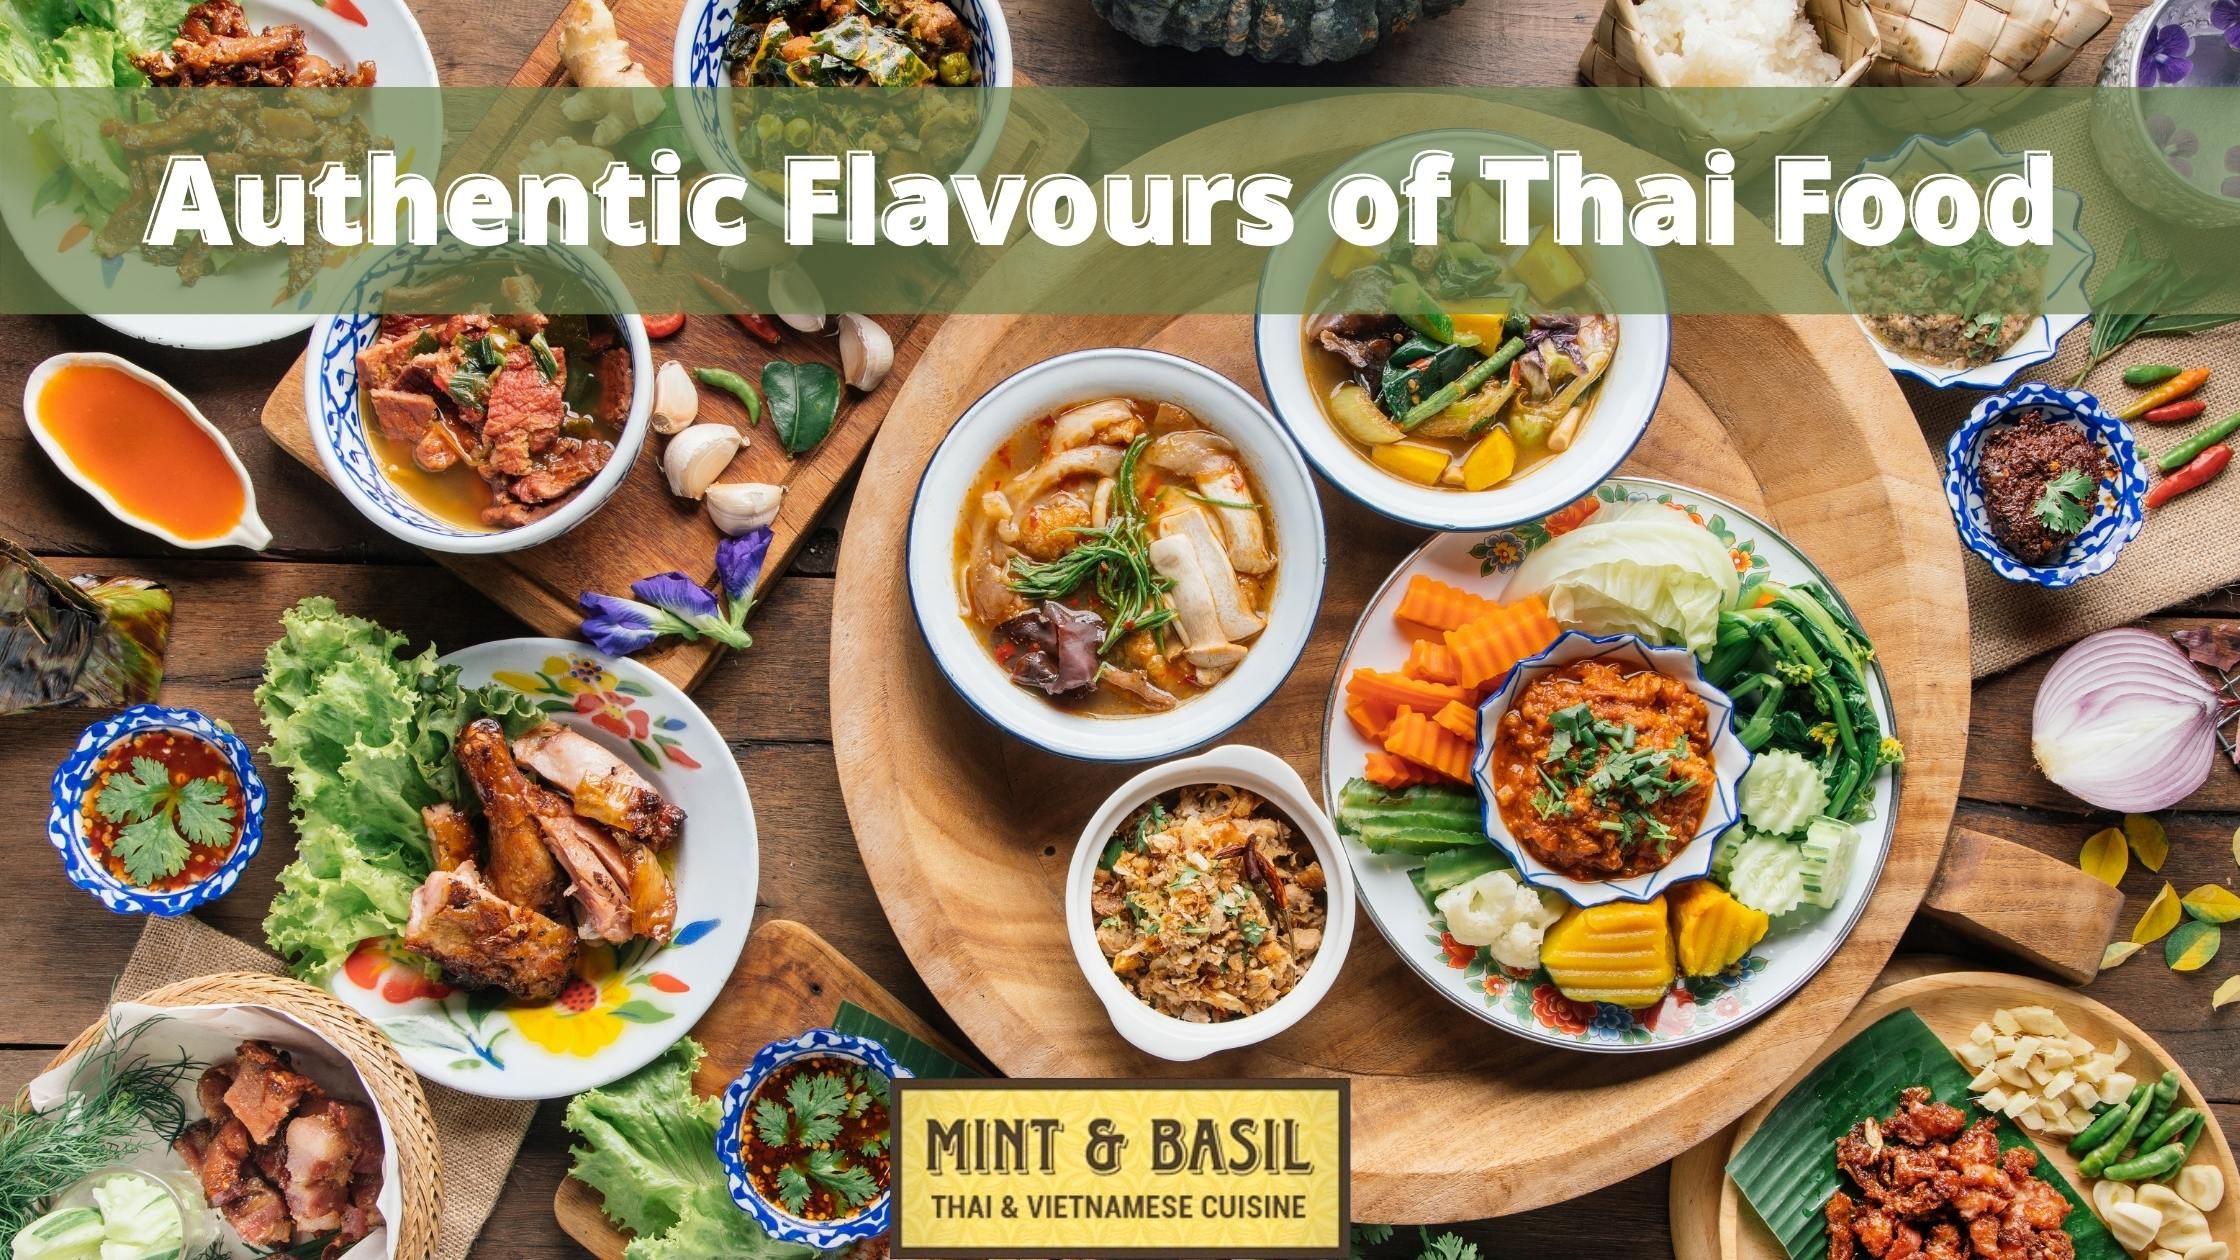 Authentic Flavours of Thai Food